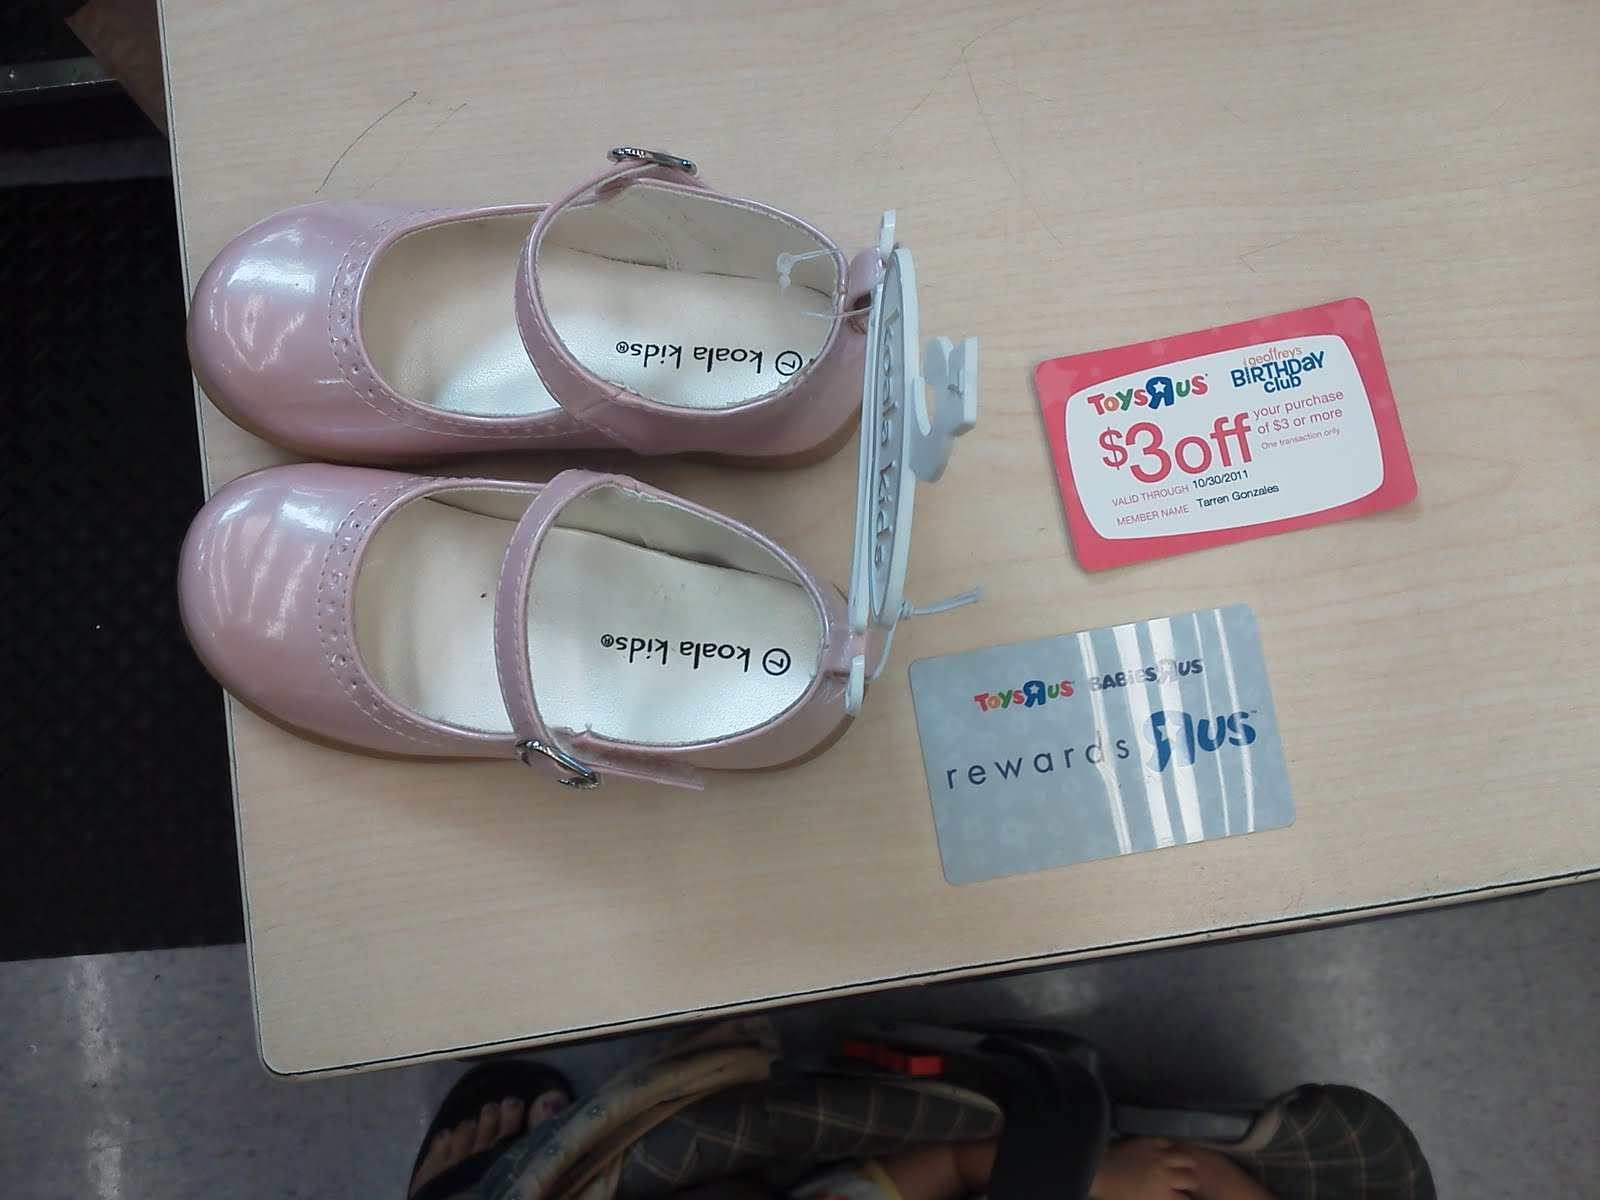 Fresno Frugalista Babies R Us Clearance Clothing and Shoes $5